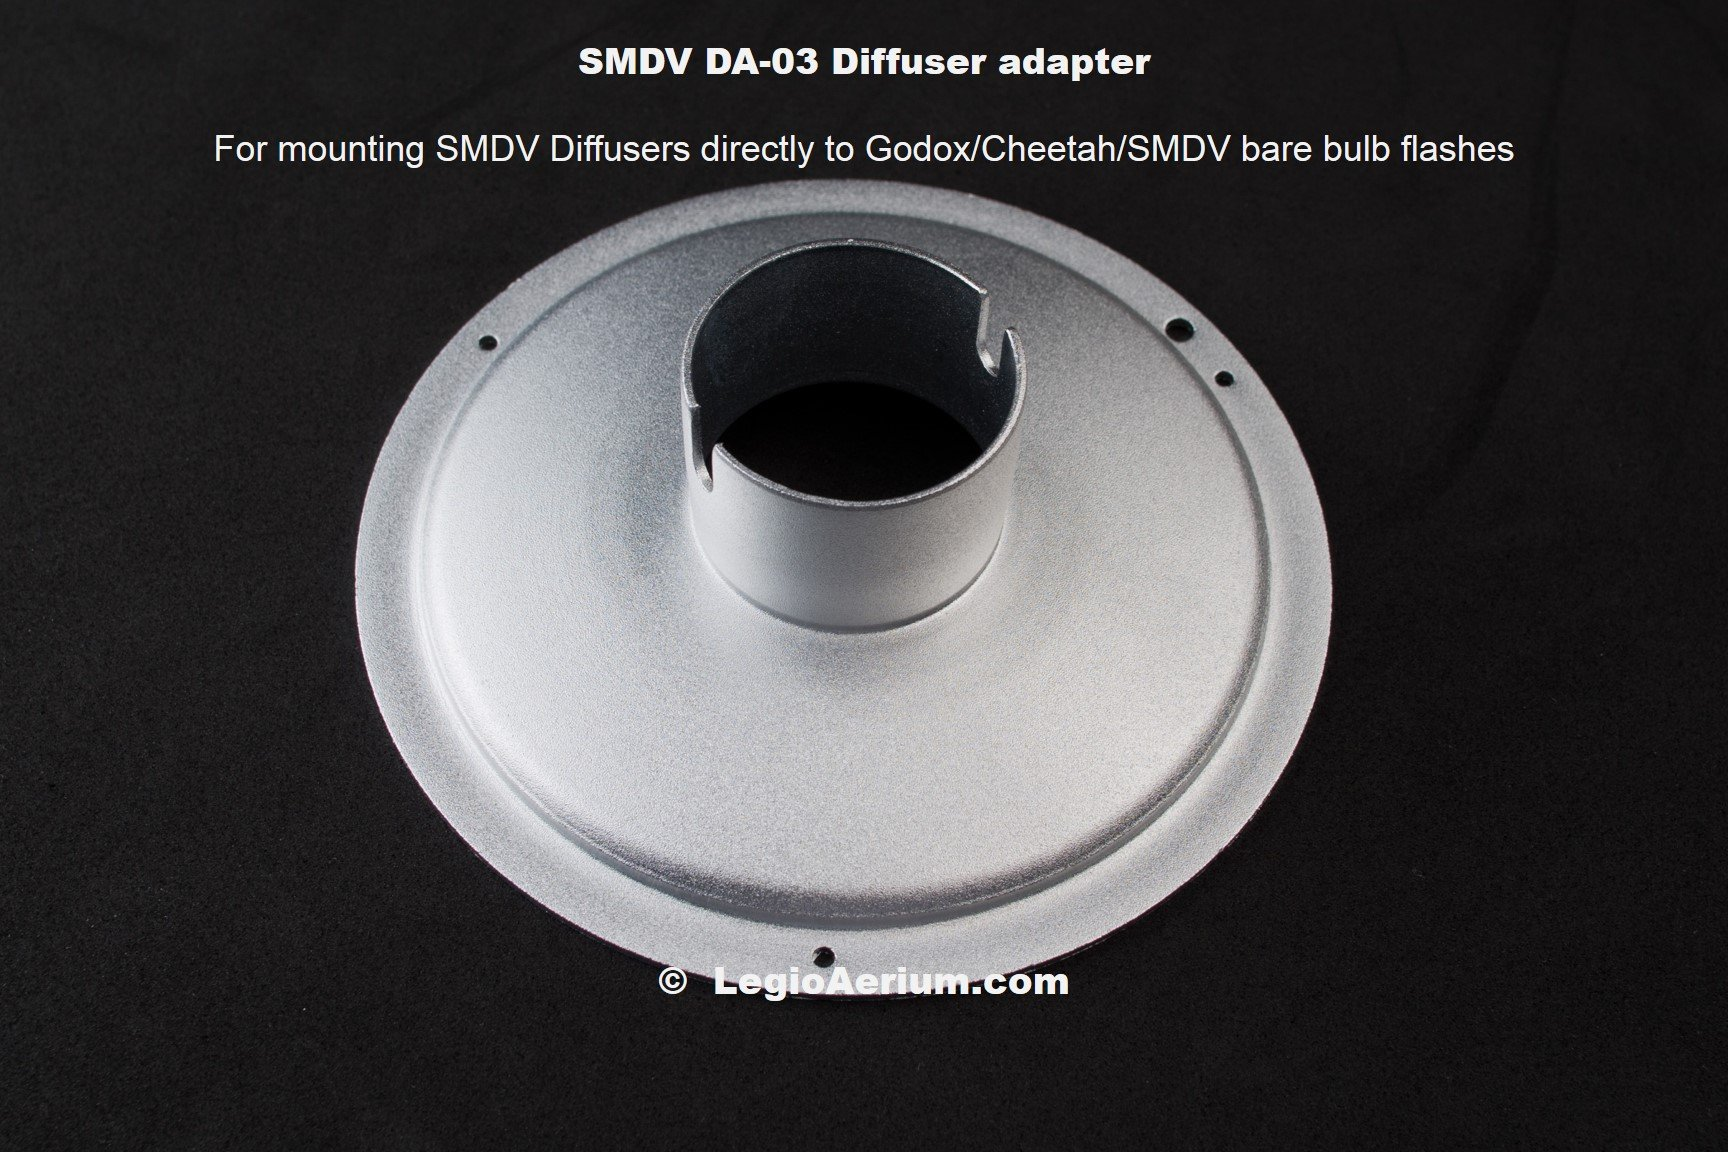 SMDV DA-03 adapter for Speedbox Diffusers and Godox Wistro AD-180, AD-360, Cheetah Light CL-180, CL-360, and SMDV bare bulb flashes by SMDV